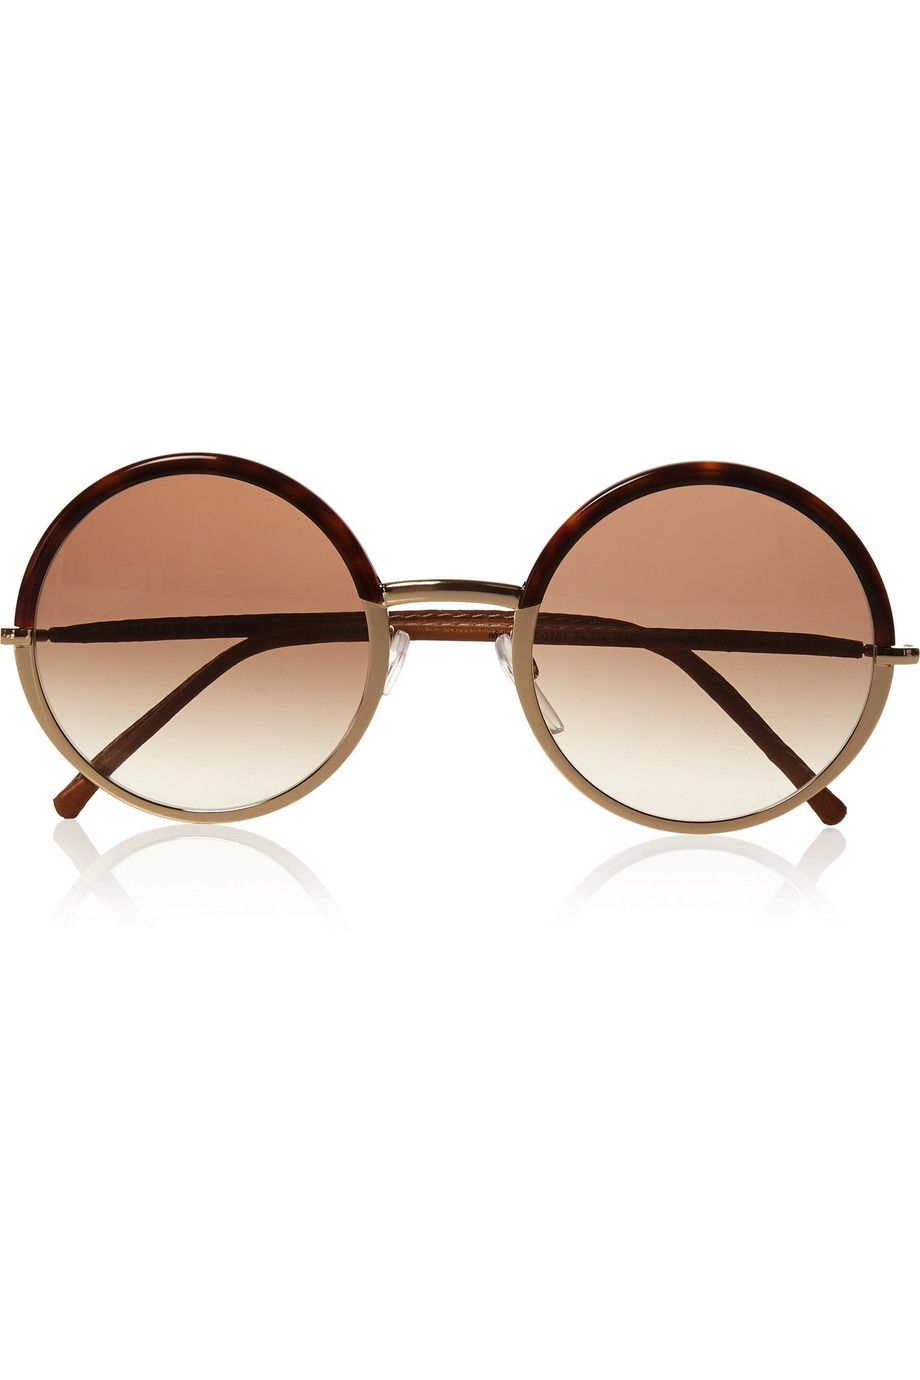 Le Meilleur Cutler And Gross Round Frame Metal And Acetate Ce Mois Ci